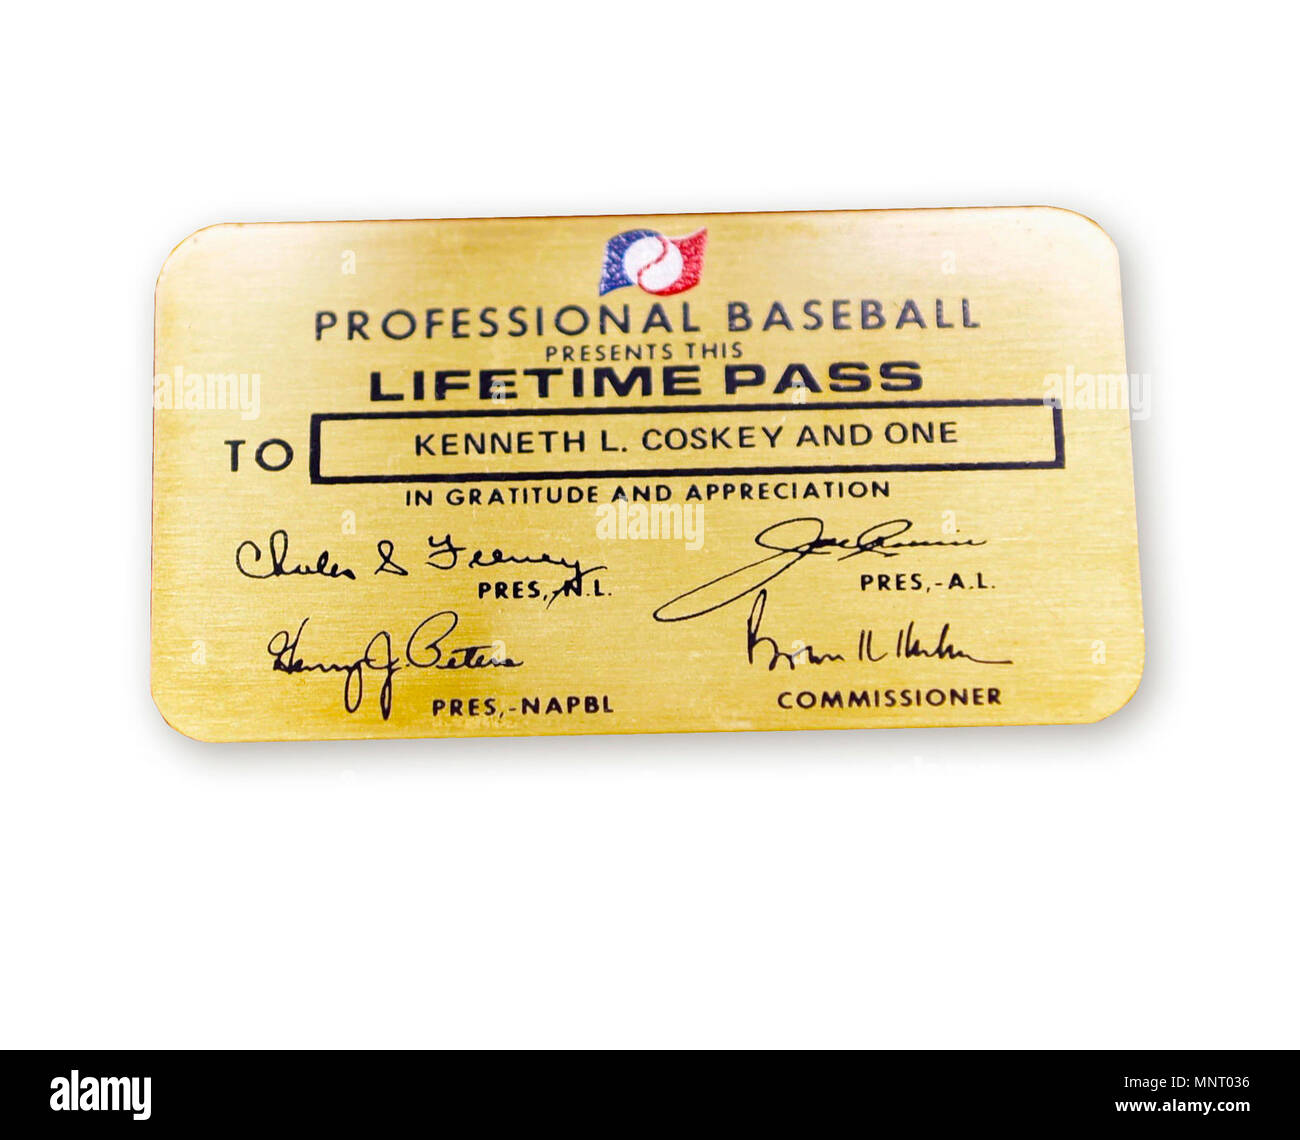 """Major League Baseball has occasionally given out its coveted Lifetime Pass, the """"Golden Ticket,"""" to veterans. On September 6, 1968, North Vietnamese shot down as A6A Intruder piloted by Navy Commander Kenneth Coskey. Held as a prisoner of war in North Vietnam, he was released on March 14, 1973. Major League Baseball presented him with this Lifetime Pass that would allow Coskey and a guest to attend any game for the rest of his life. Stock Photo"""